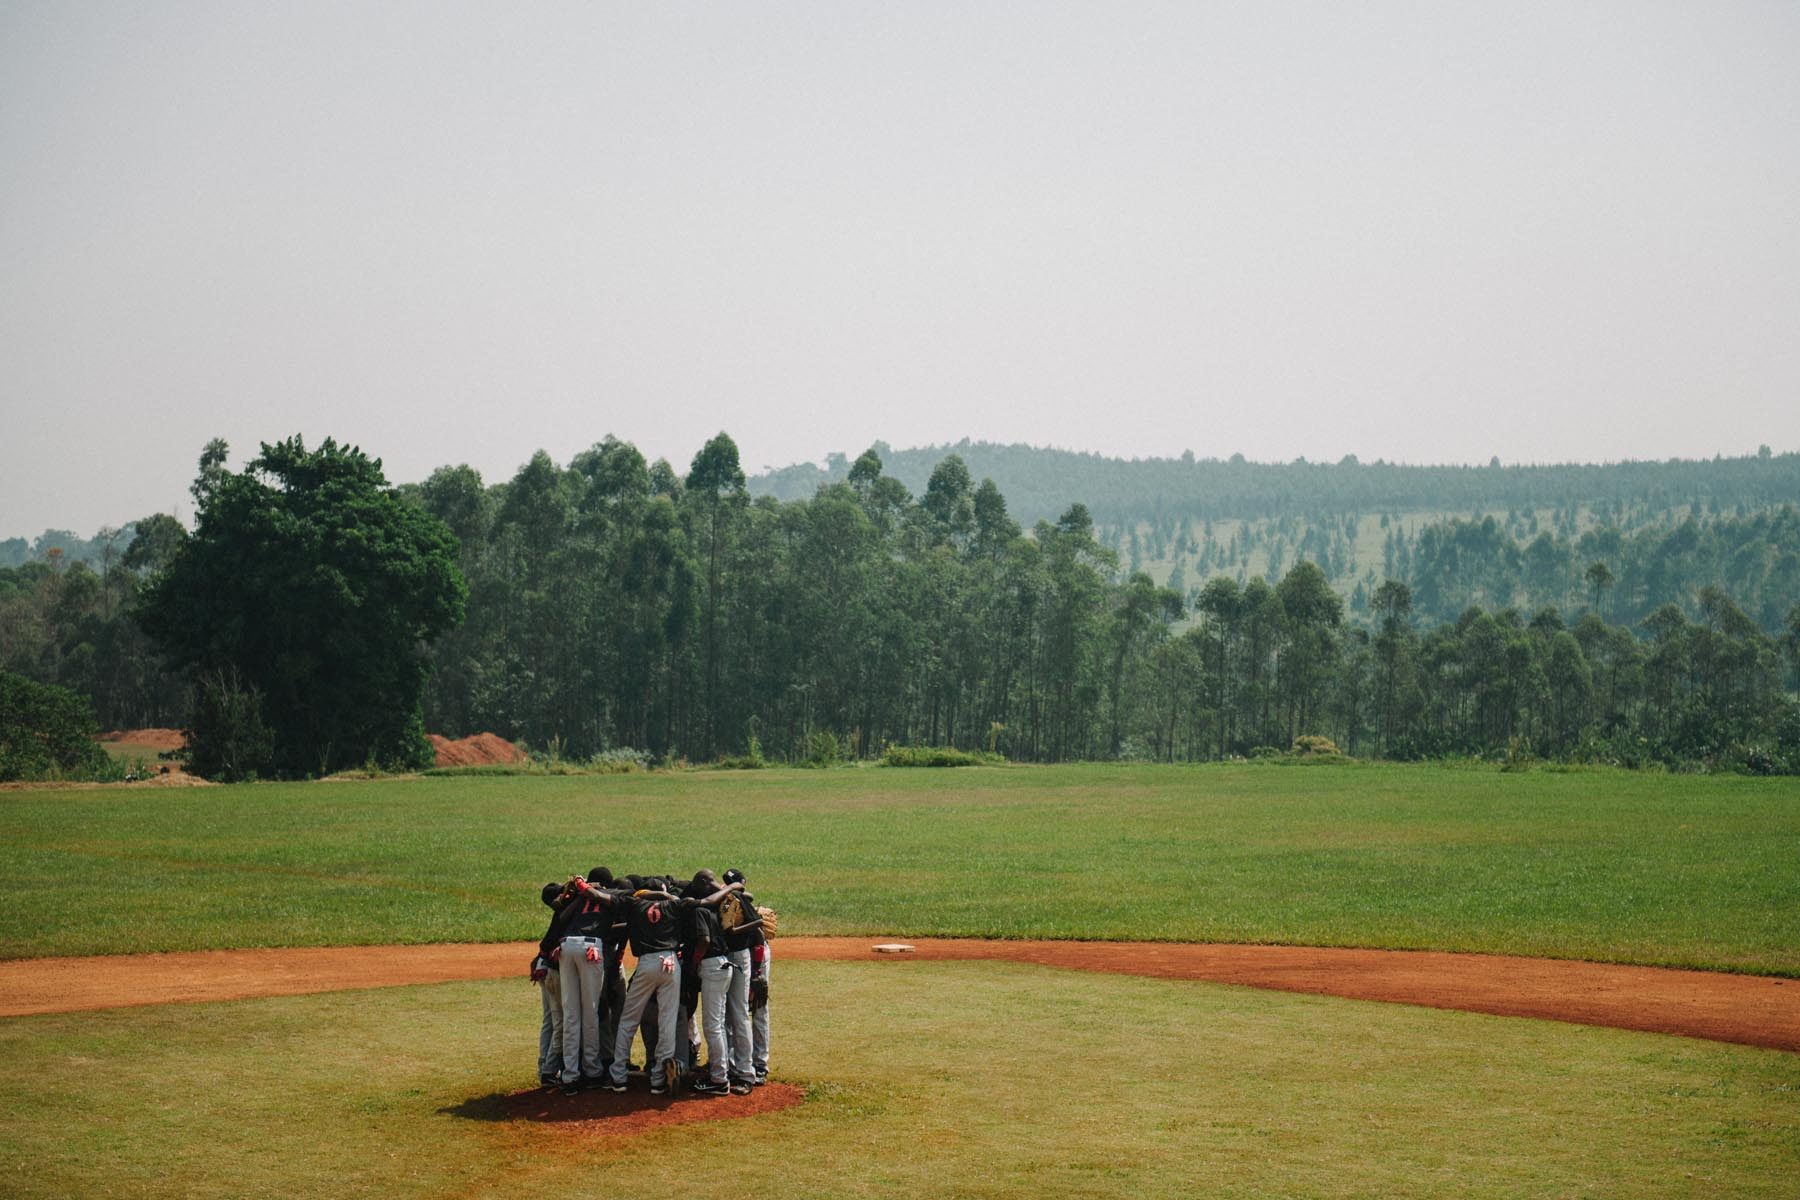 HKP-UgandaBaseball-Day4-0457.jpg